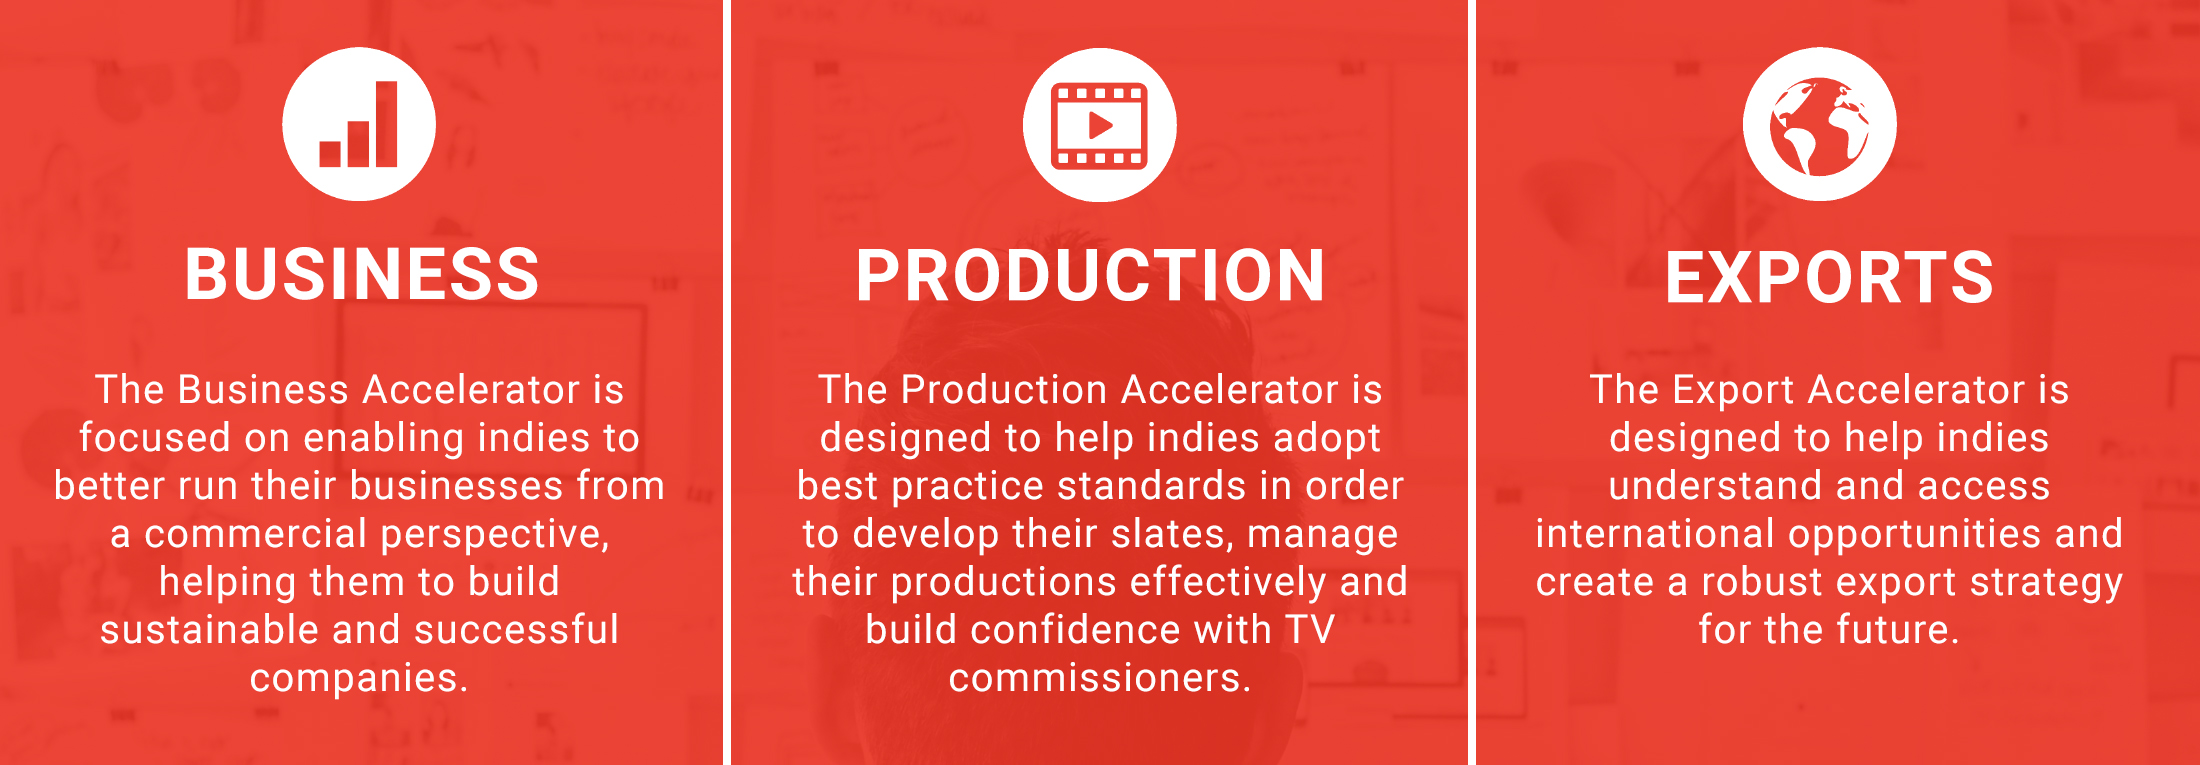 Accelerator 3 key areas: Business, Production and Exports